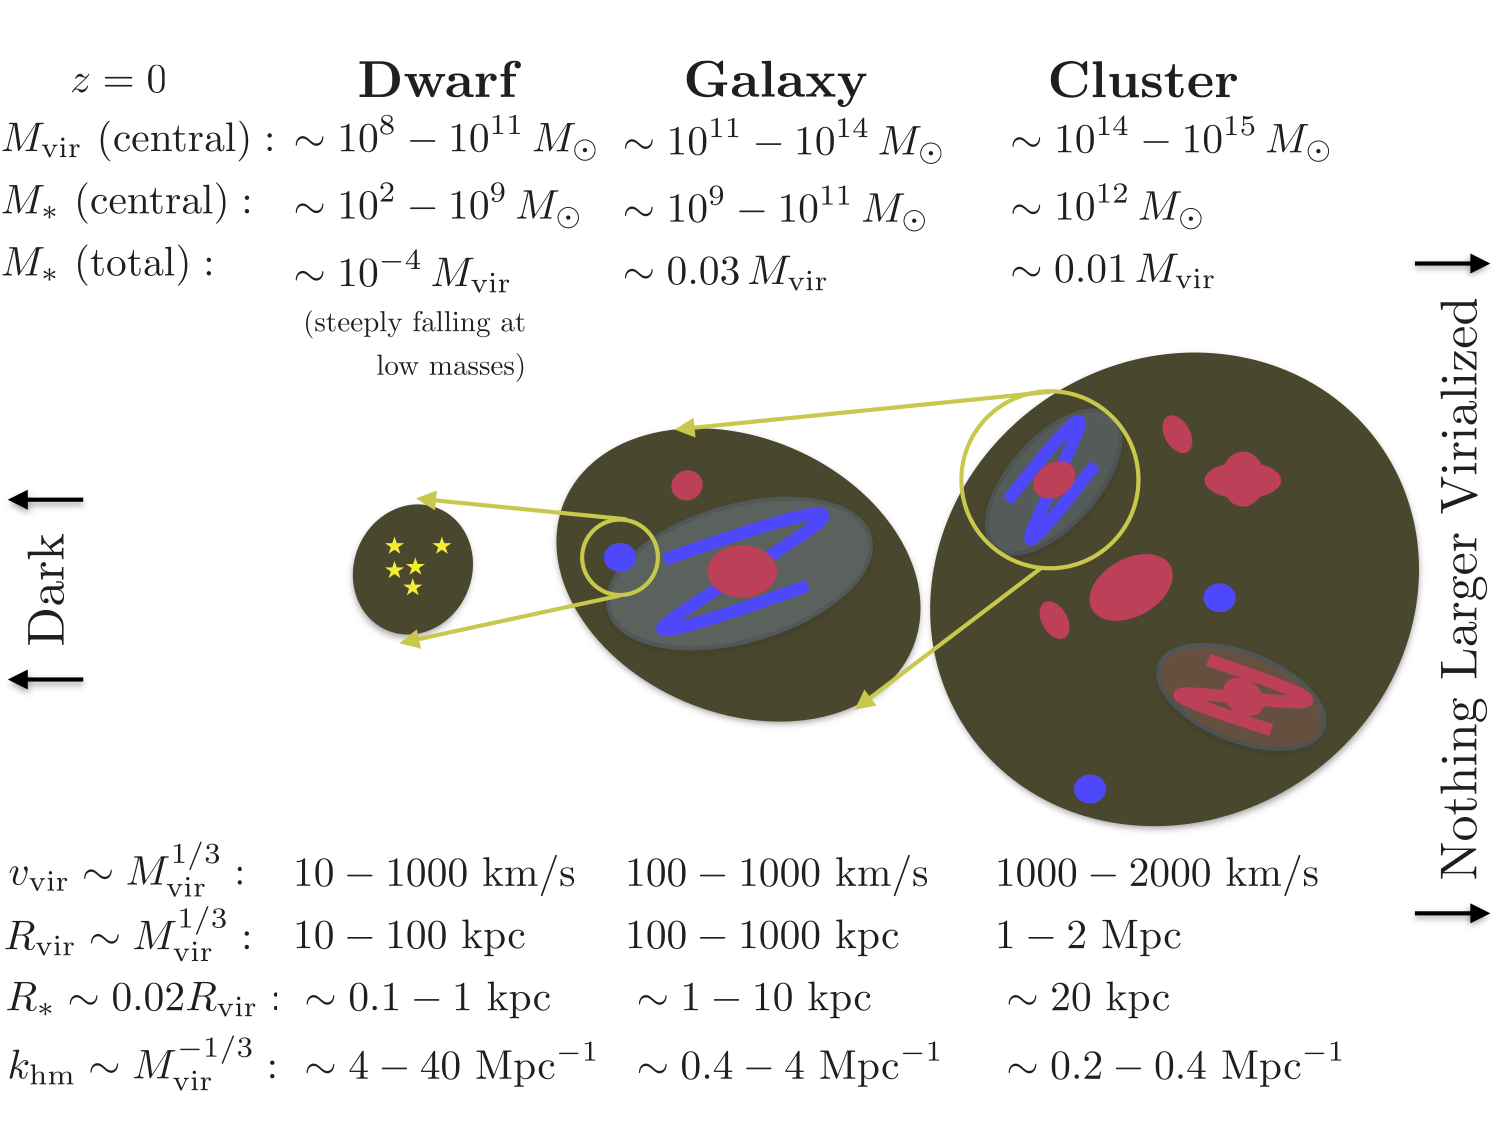 """Primer on dark matter halos from our paper. The """"virial mass"""" is the mass of the dark matter contained in the halo (and maps to our astrophysical parameter). However, astronomers cannot measure mass directly, and so use proxies like orbital velocities of visible objects (galaxies, stars, and gas) to estimate mass. Presumably the hierarchical structure of halos continues down to ever-smaller scales, but below dwarf galaxies, no visible bodies are known to be embedded in the dark matter halos."""